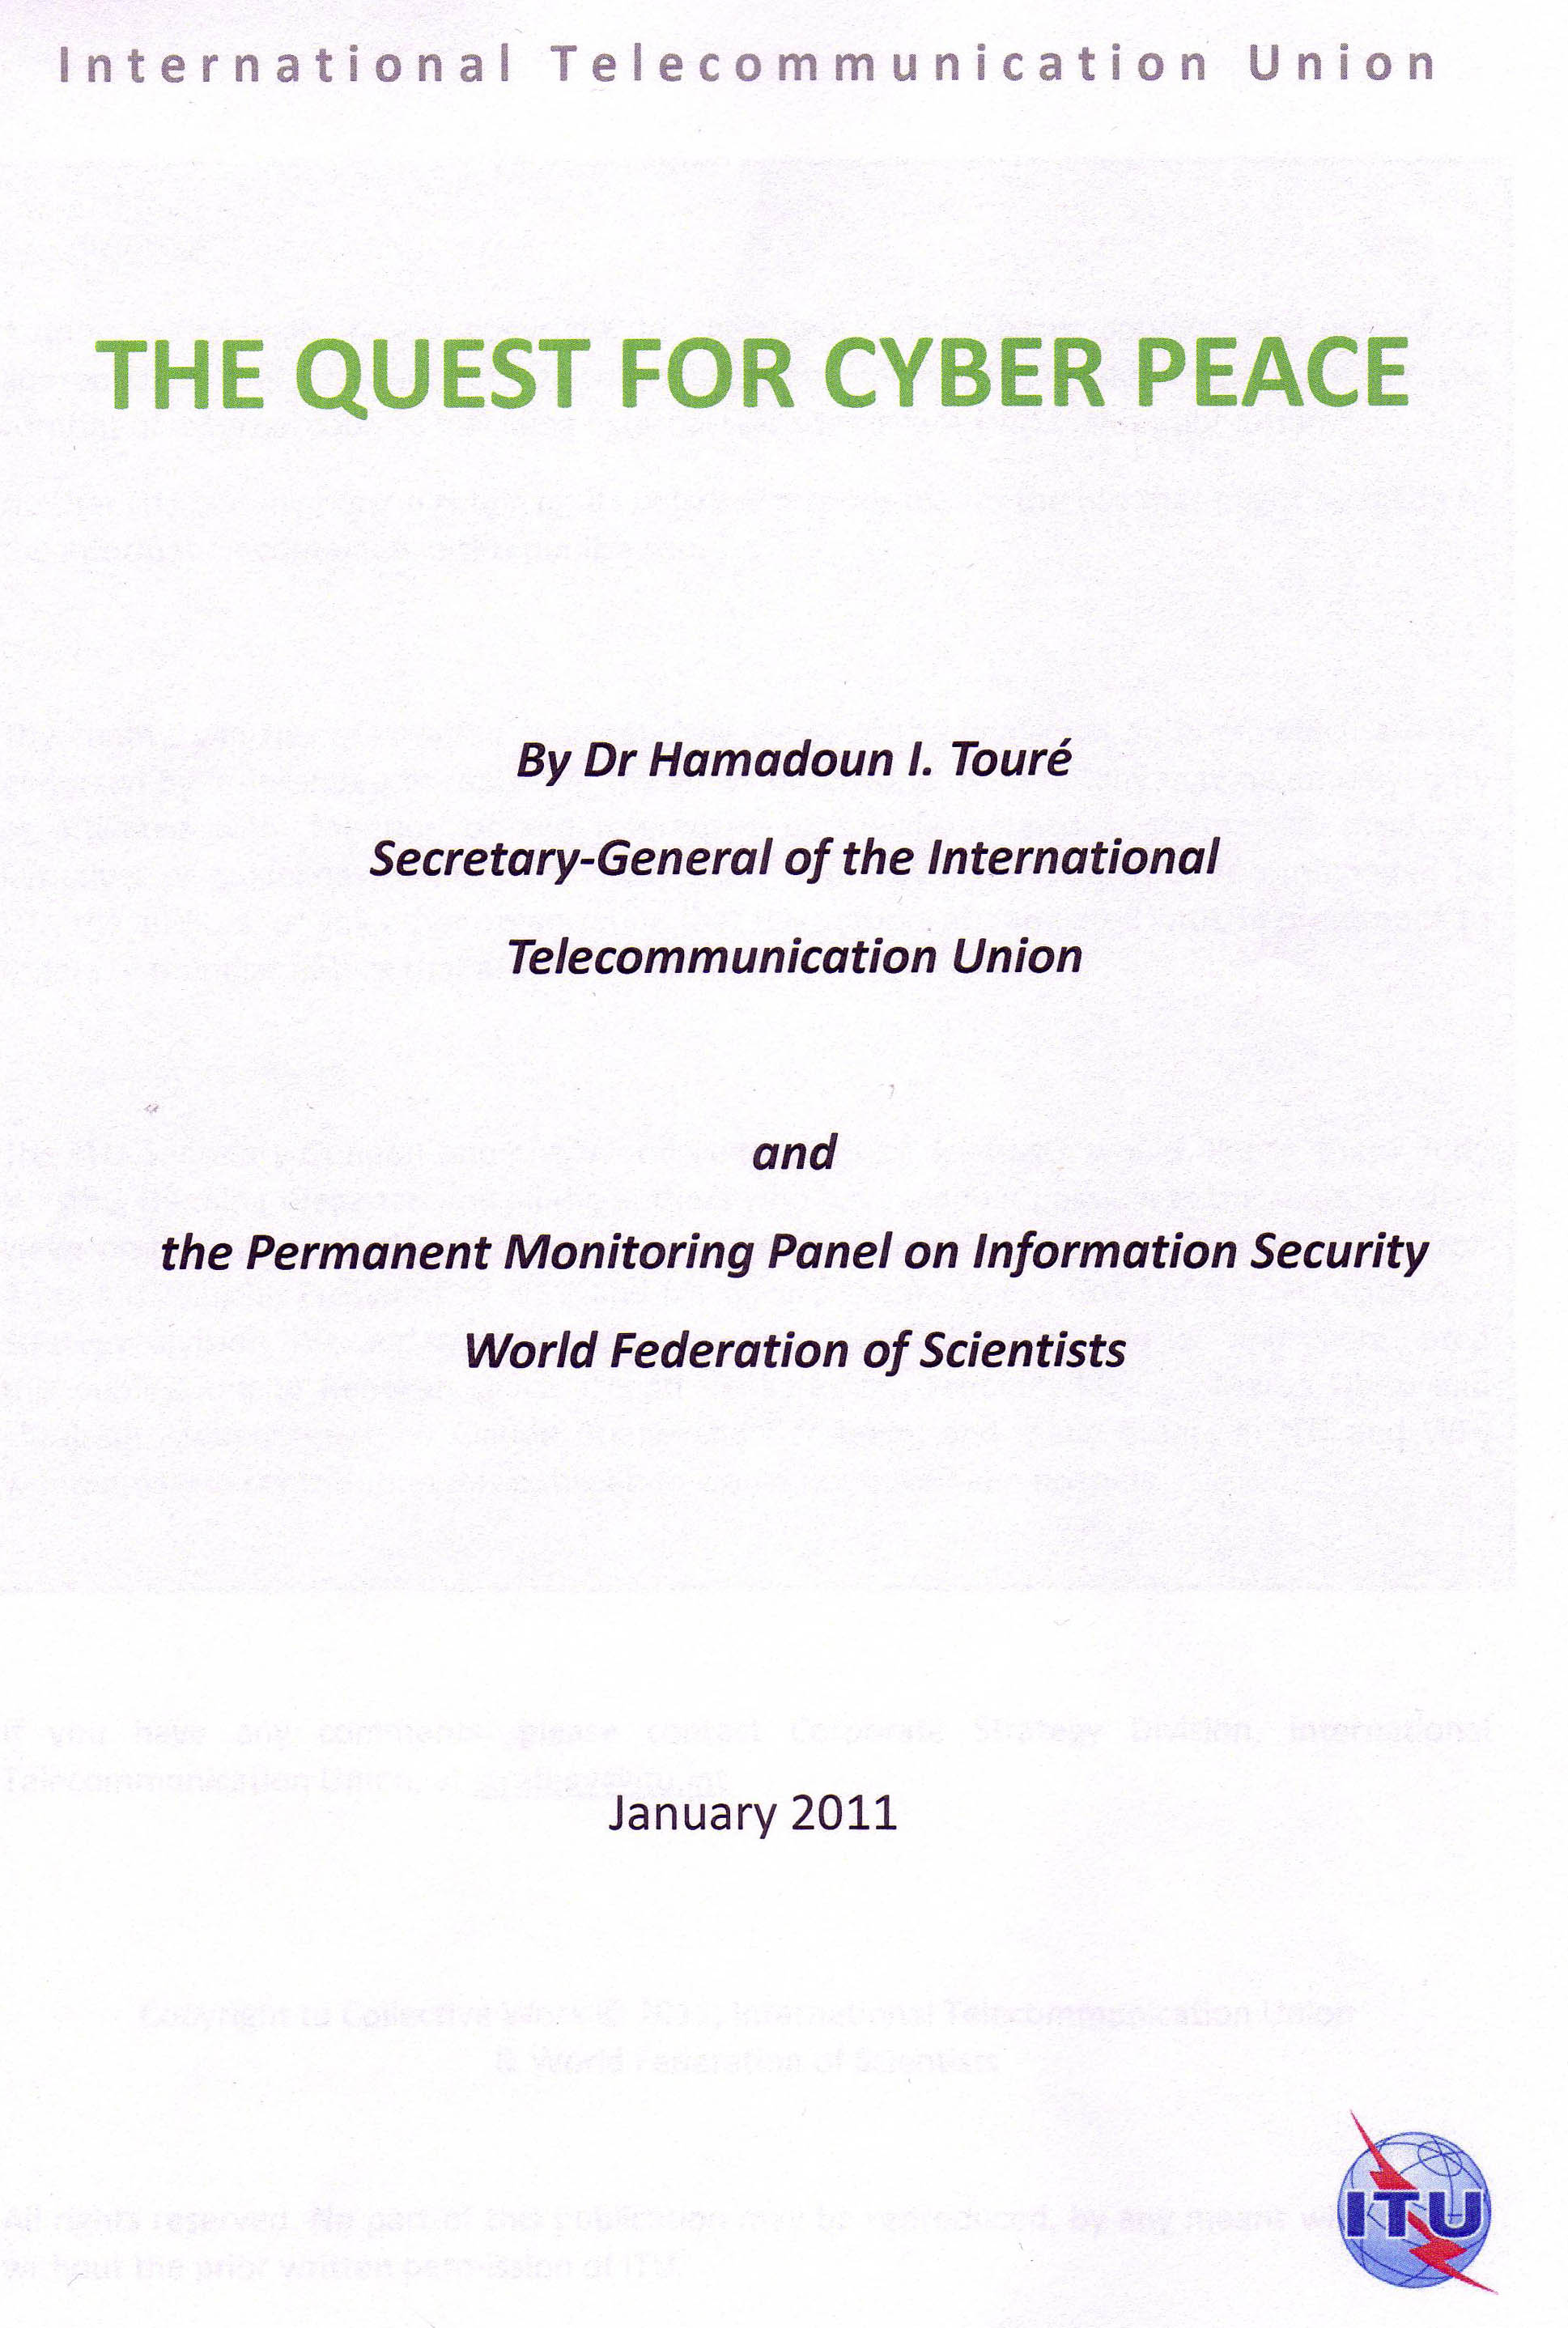 the-quest-for-cyber-peace-page-2.jpg